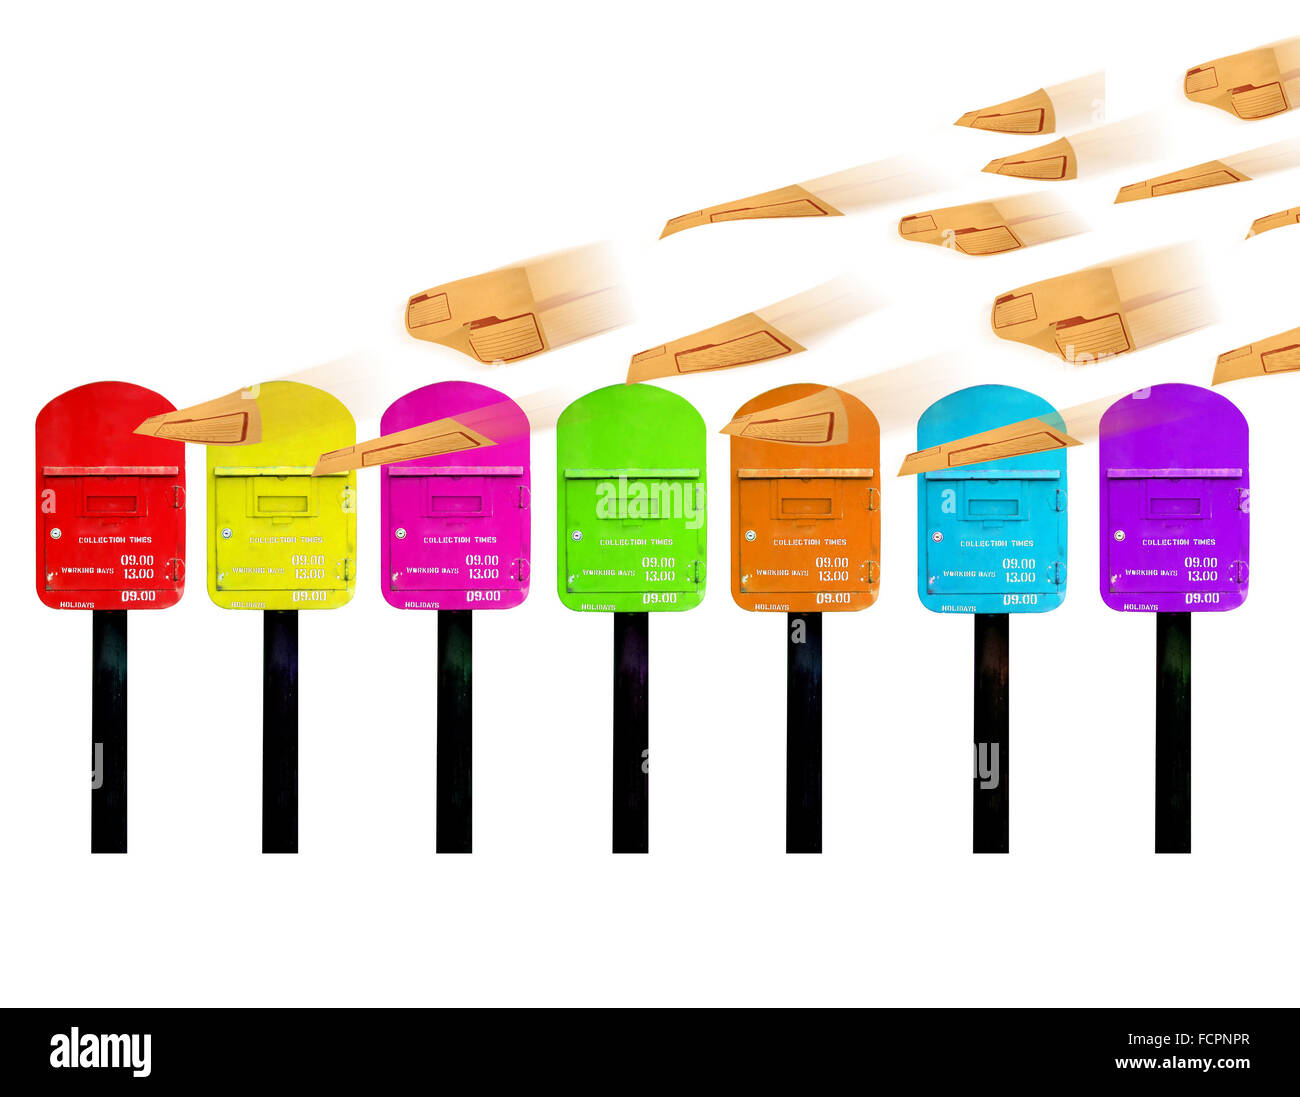 7 color postbox for a week and brown envelope - Stock Image